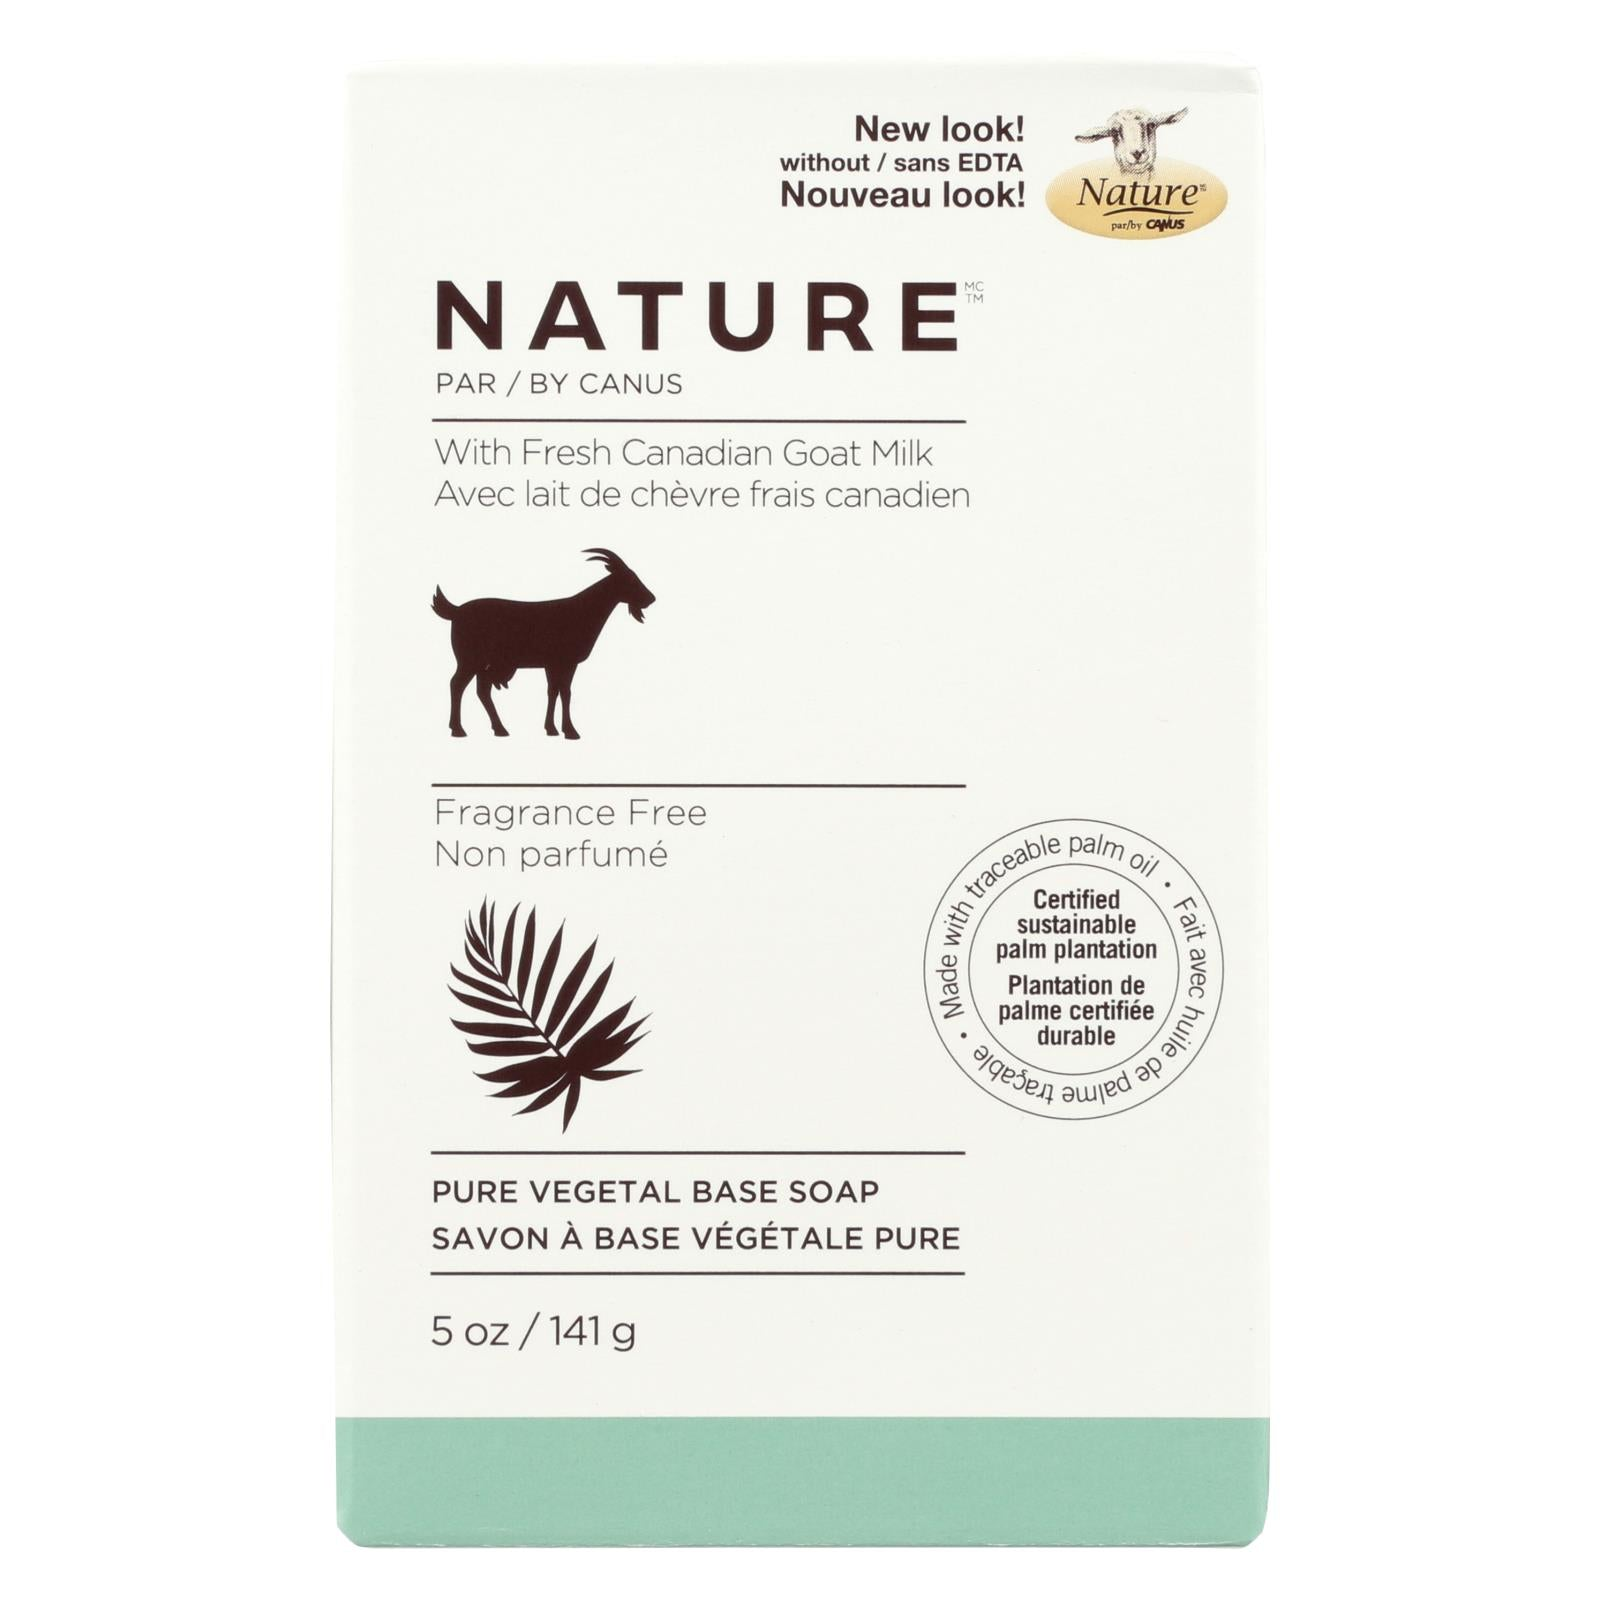 Buy Canus Goats Milk Bar Soap - Fragrance Free - 5 oz - Bar Soap from Veroeco.com